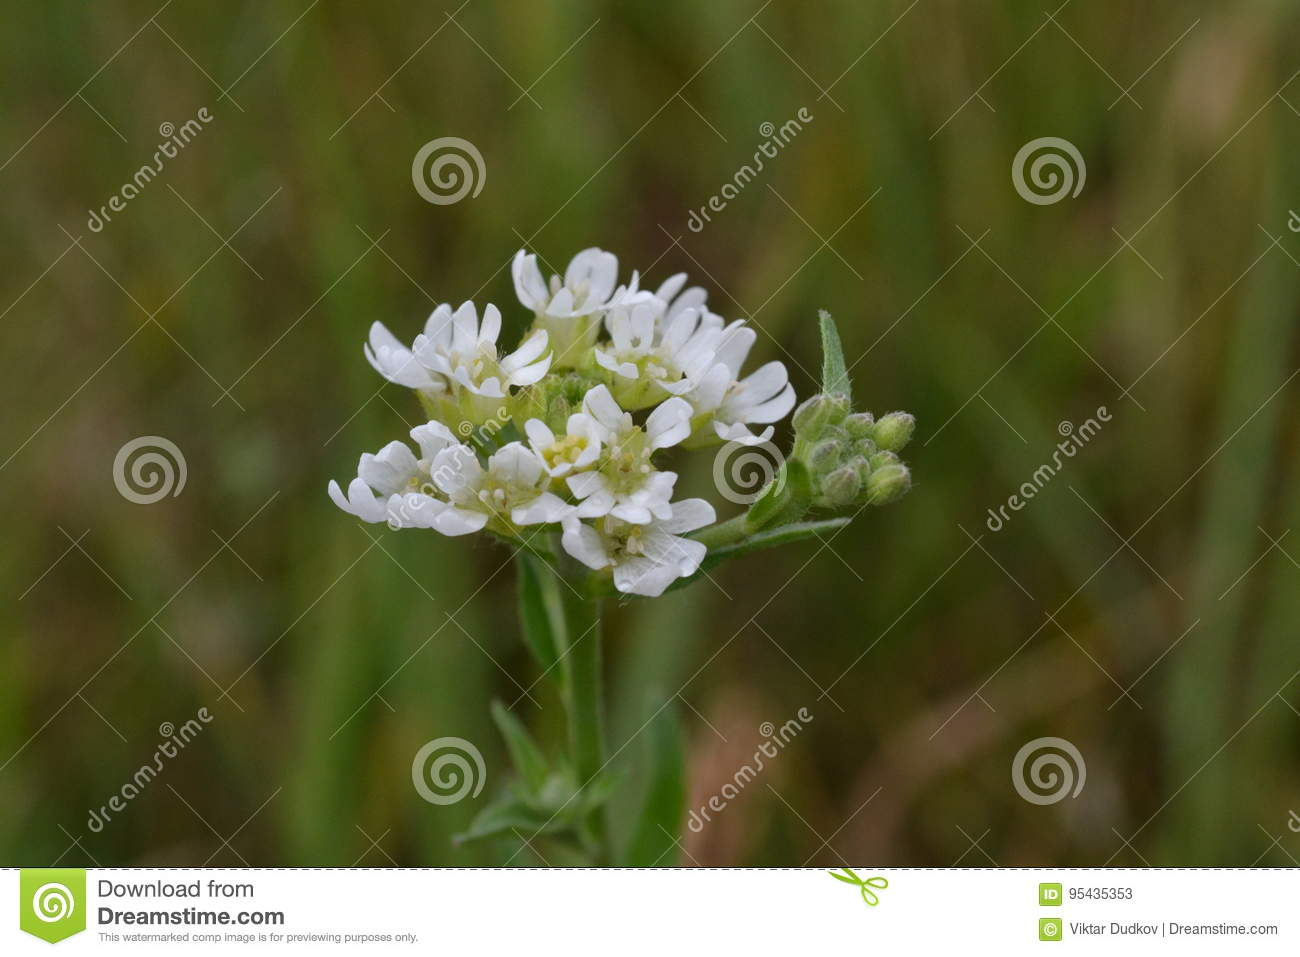 Small White Flowers And Buds On The Grass Background In The Early